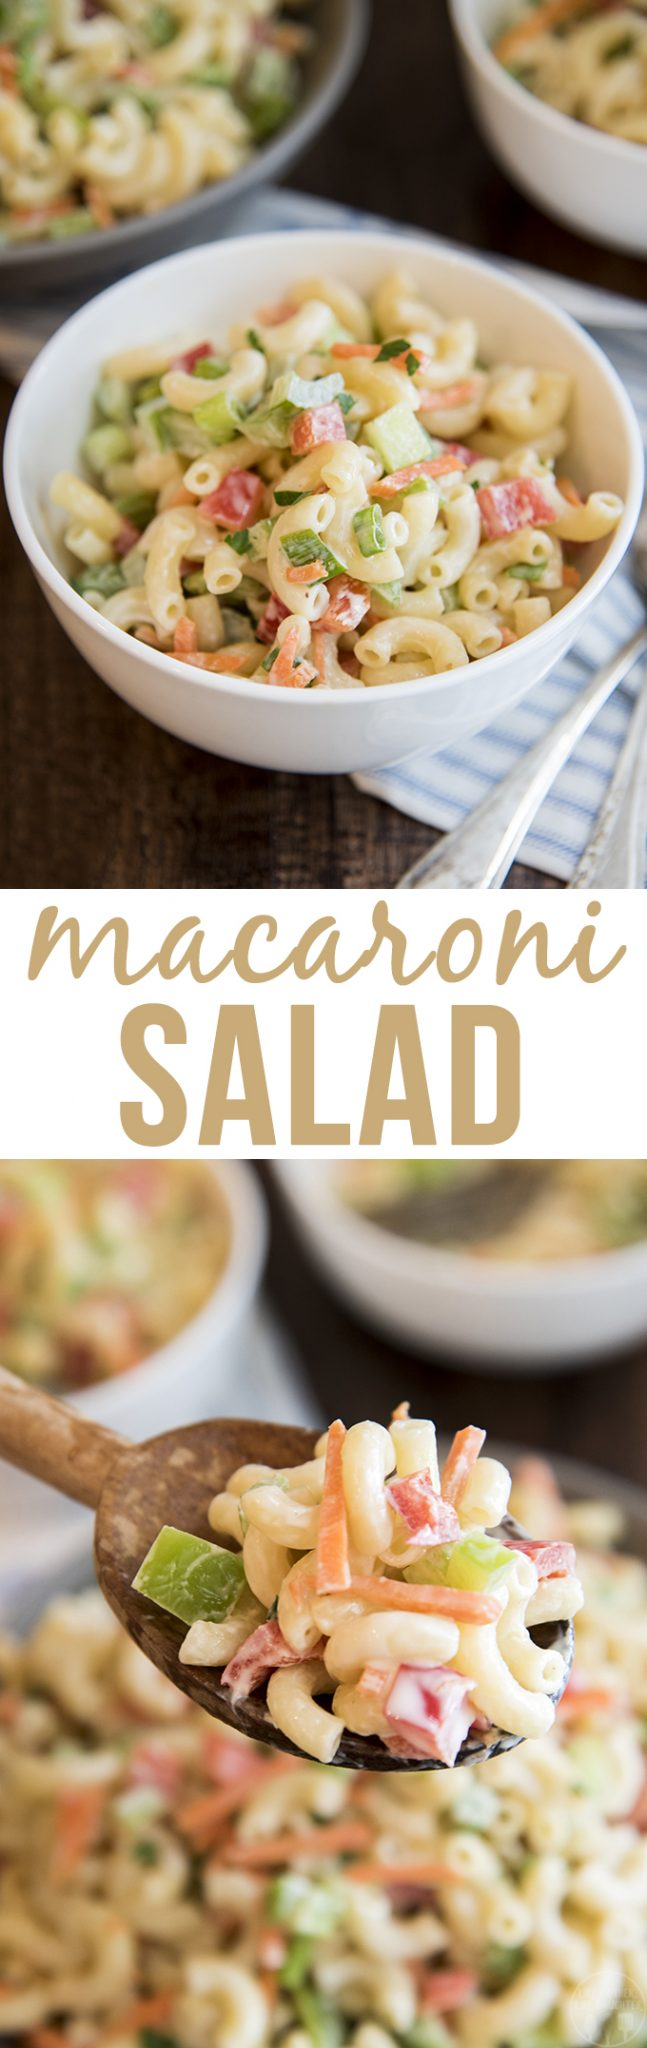 Macaroni Salad - This creamy macaroni salad is loaded full of fresh crunchy vegetables. Its the perfect summer side dish for a picnic or potluck!